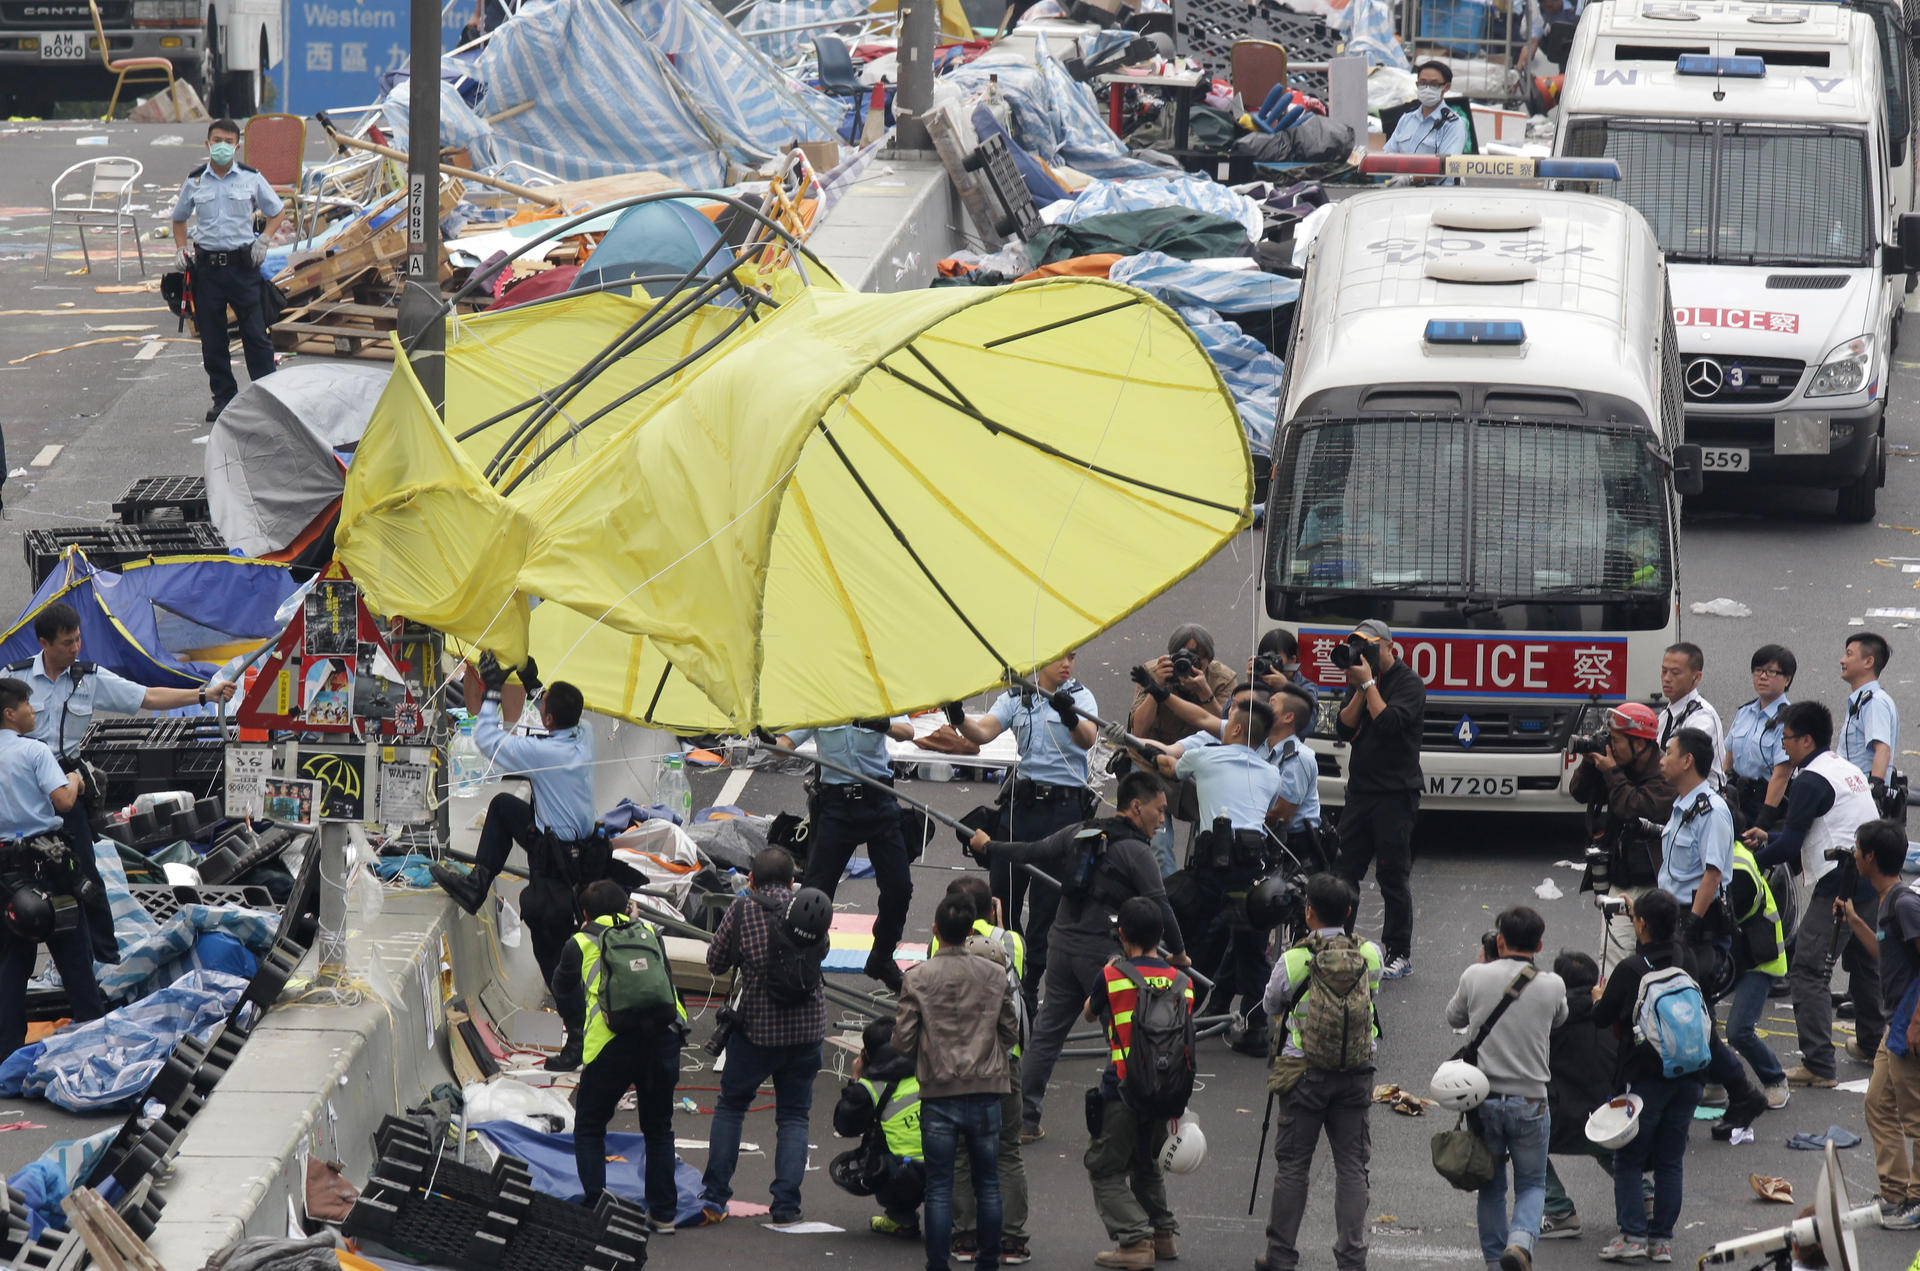 police and workers took down a giant umbrella that had become a symbol for protesters: metre giant umbrella